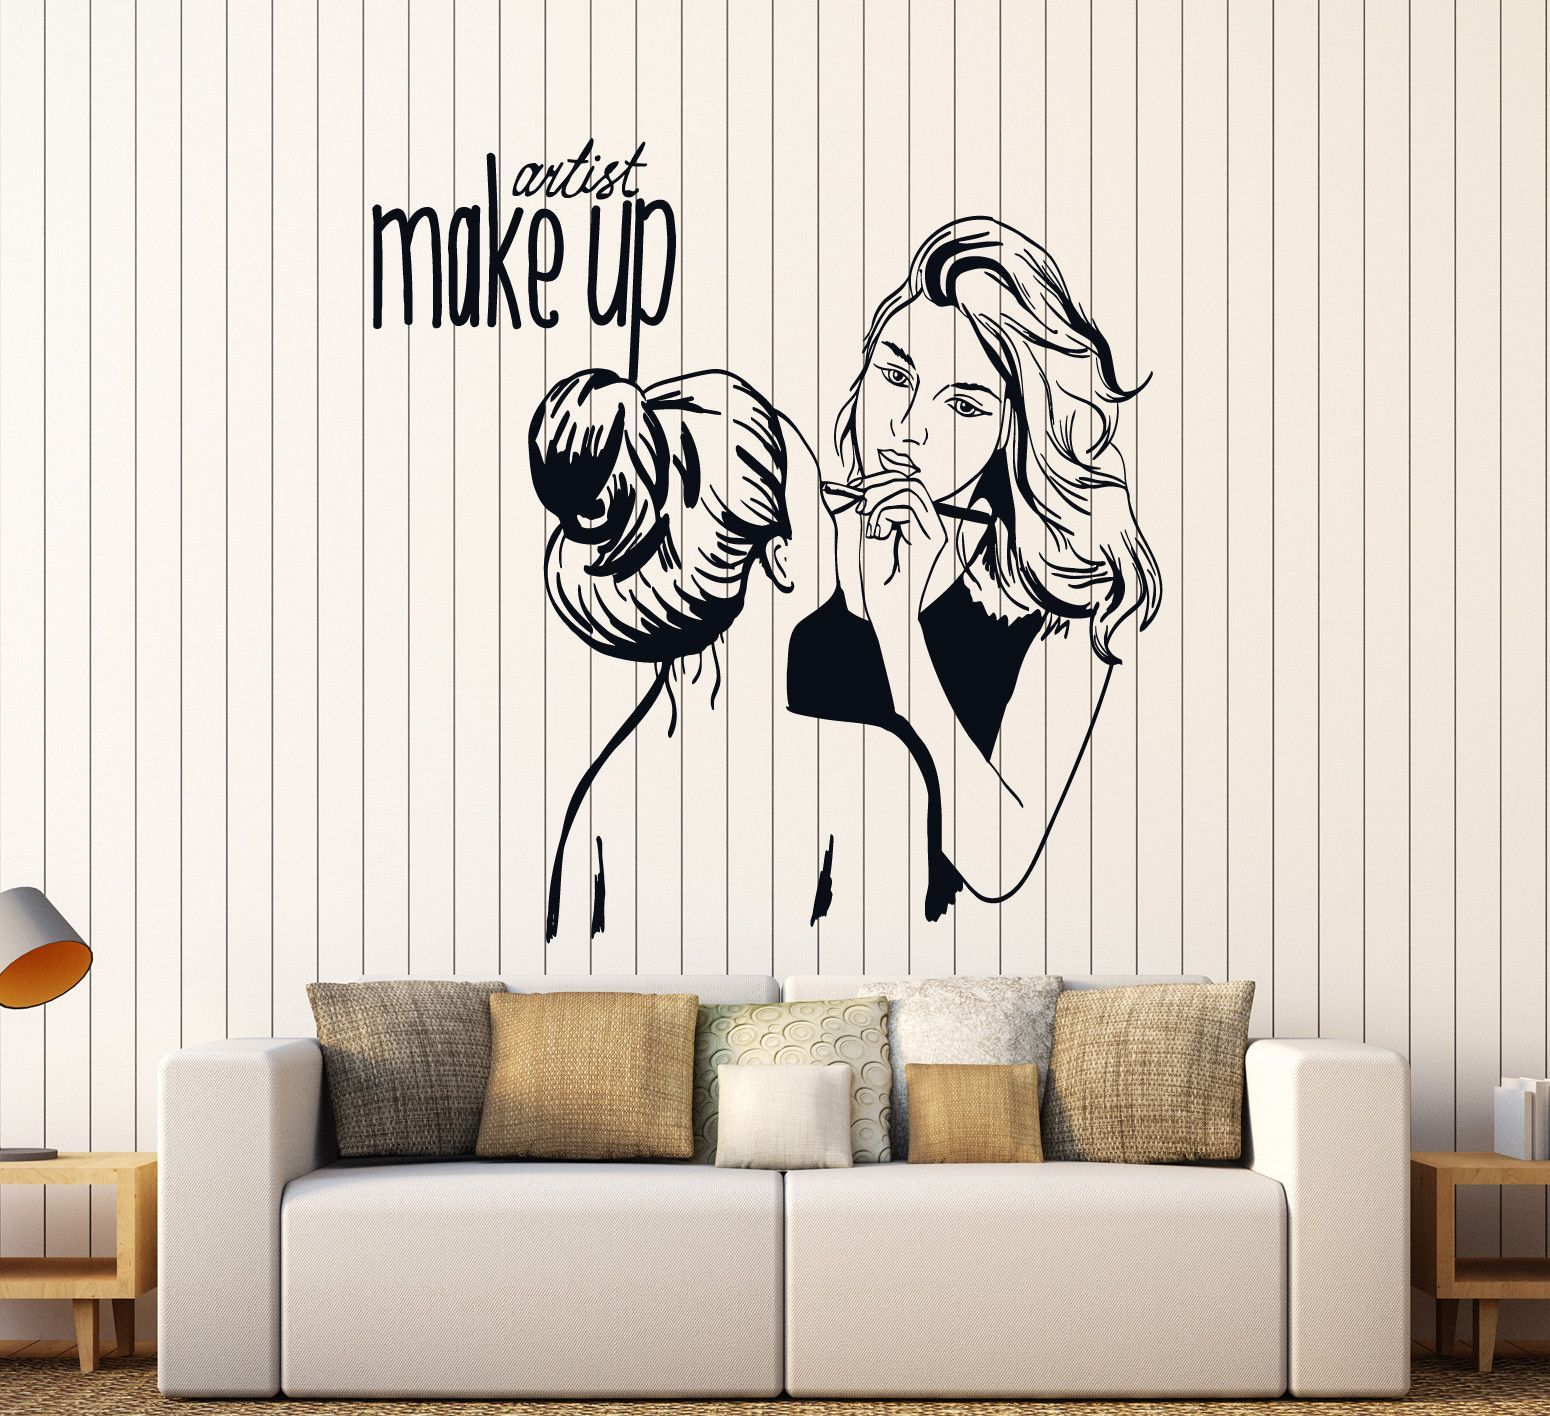 vinyl wall decal make up artist cosmetic beauty salon stickers vinyl wall decal make up artist cosmetic beauty salon stickers mural ig4535